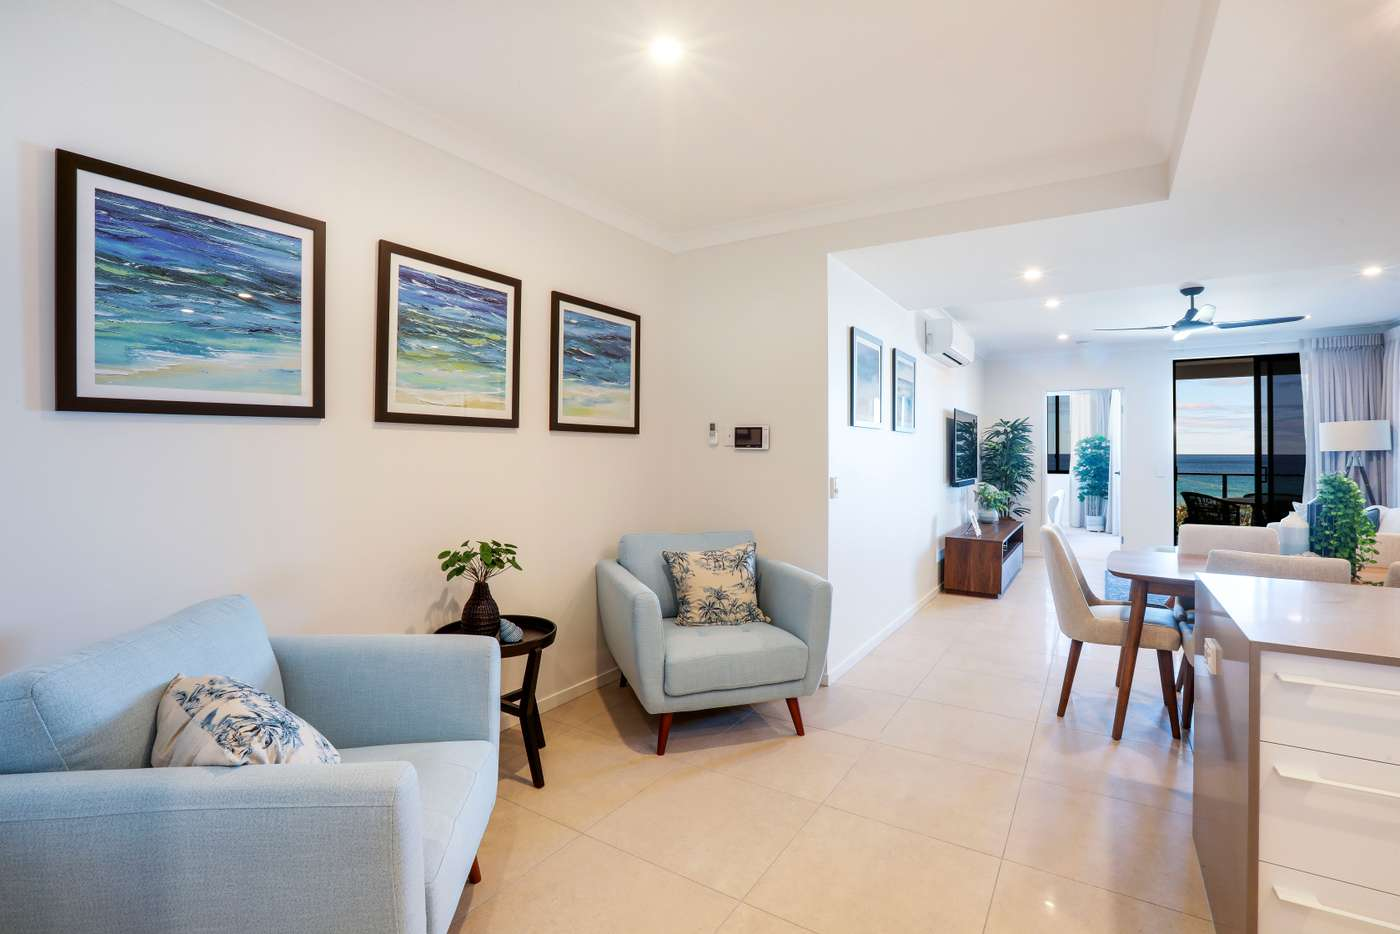 Fifth view of Homely apartment listing, 1-3 1453 Gold Coast Highway, Palm Beach QLD 4221